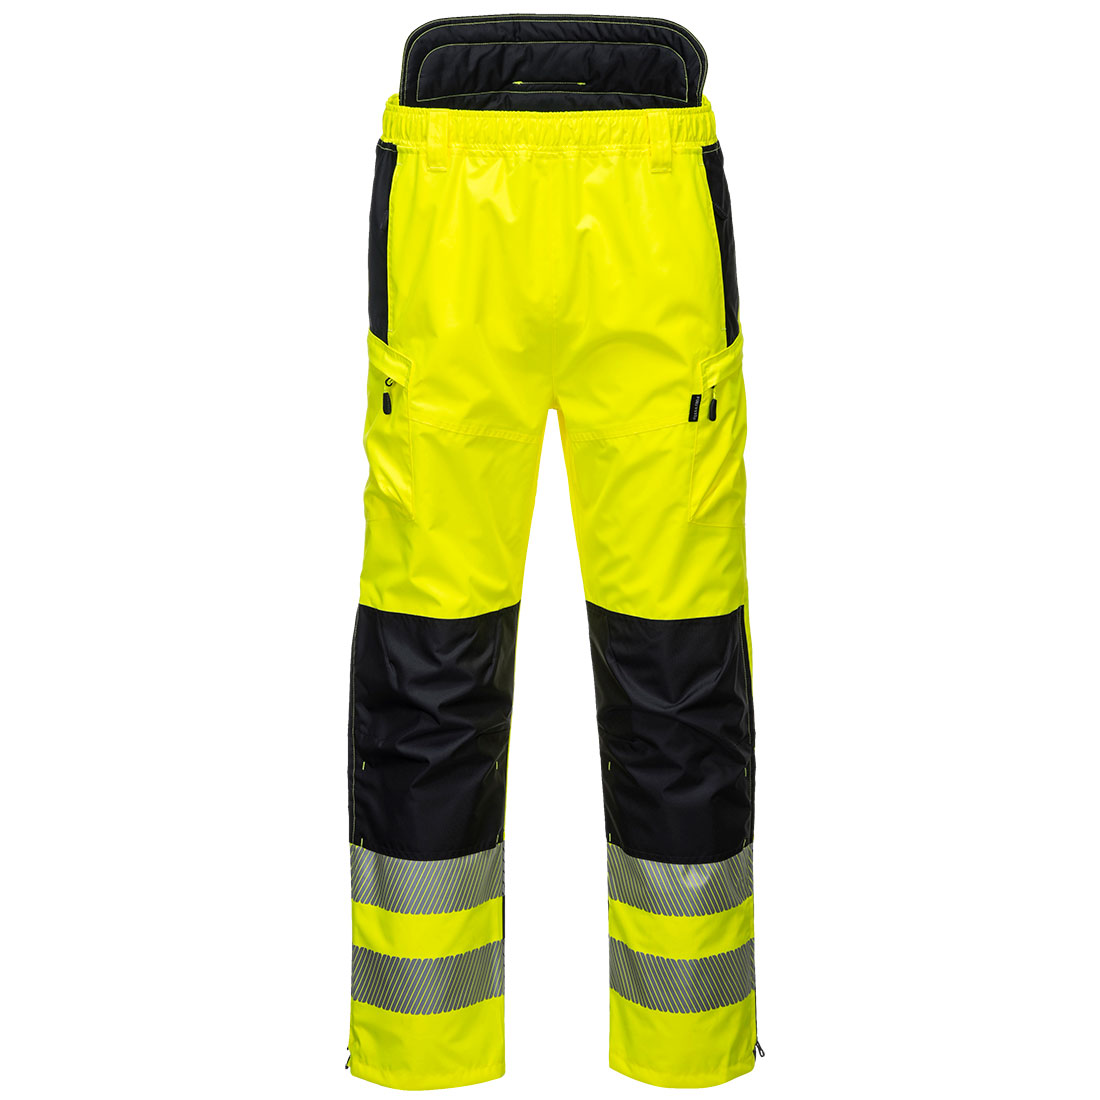 PW3 Hi-Vis Extreme Trouser Yellow/Black Large